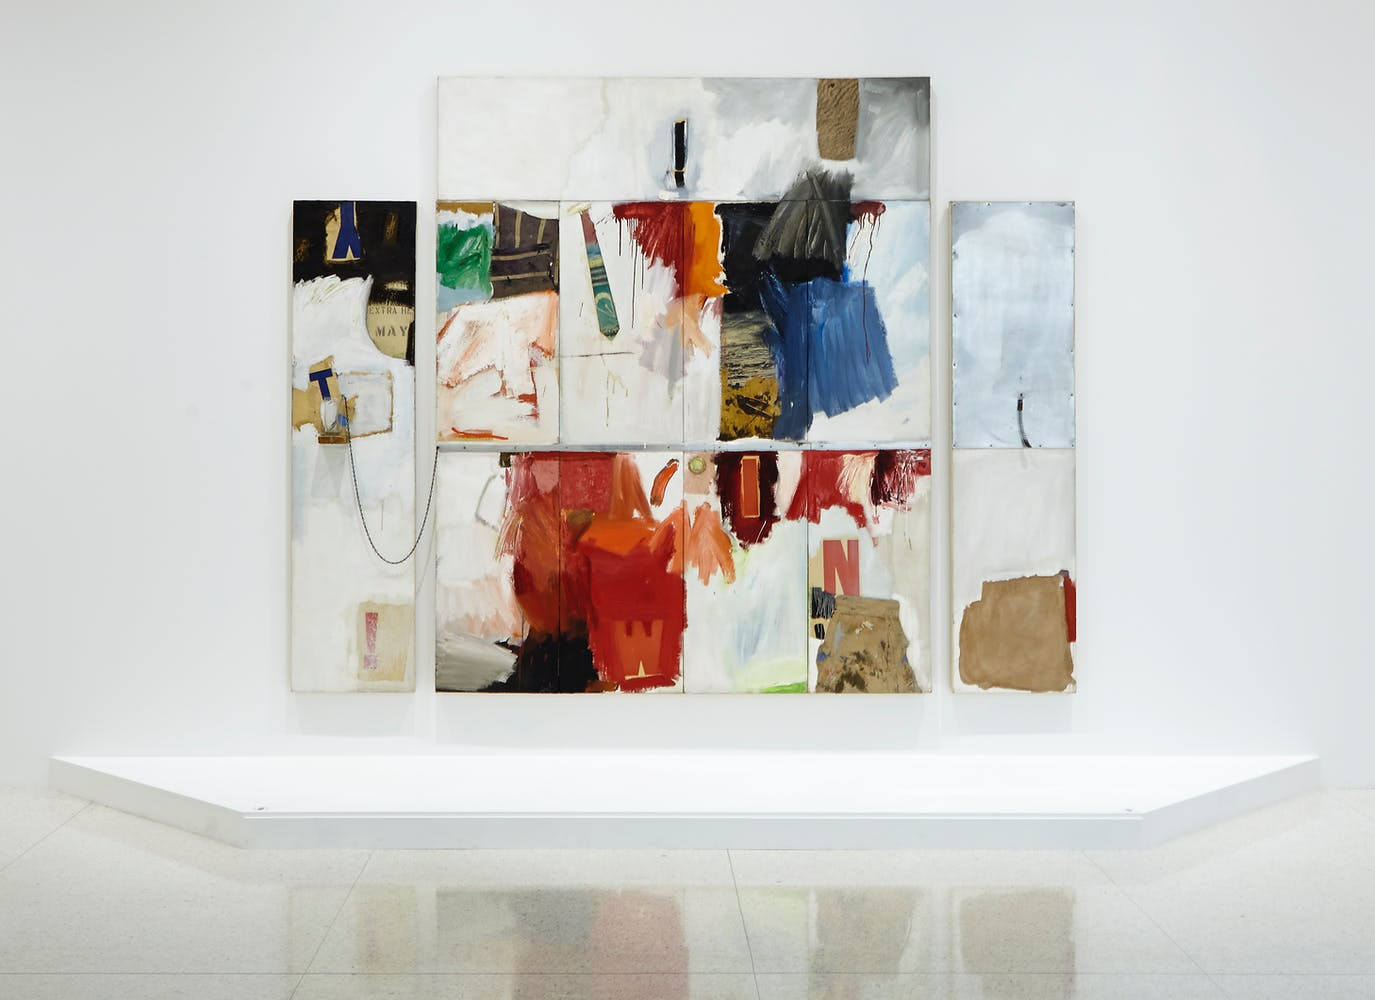 View of the exhibition International Pop, 2015; Robert Rauschenberg, Trophy II (for Teeny and Marcel Duchamp), 1960